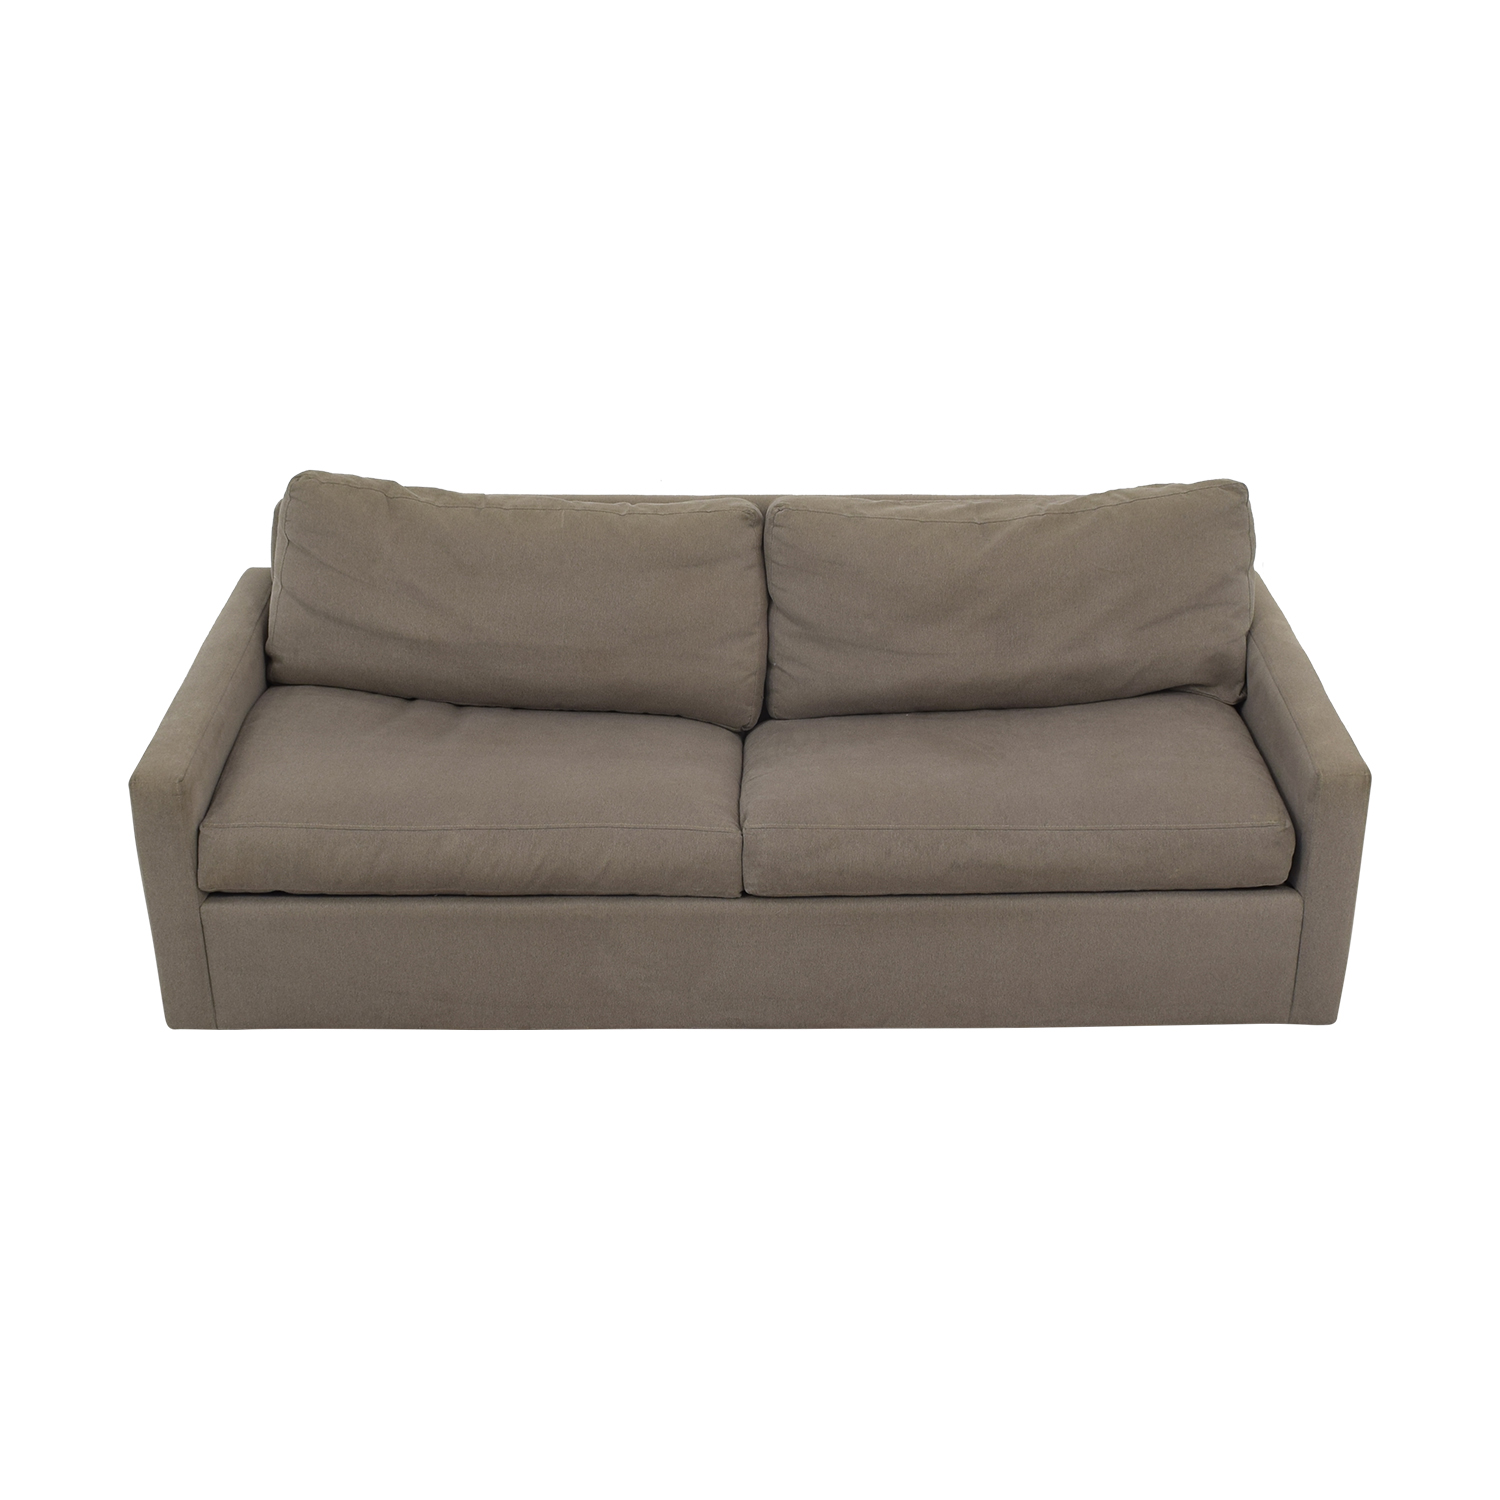 Room & Board Easton Sleeper Sofa sale